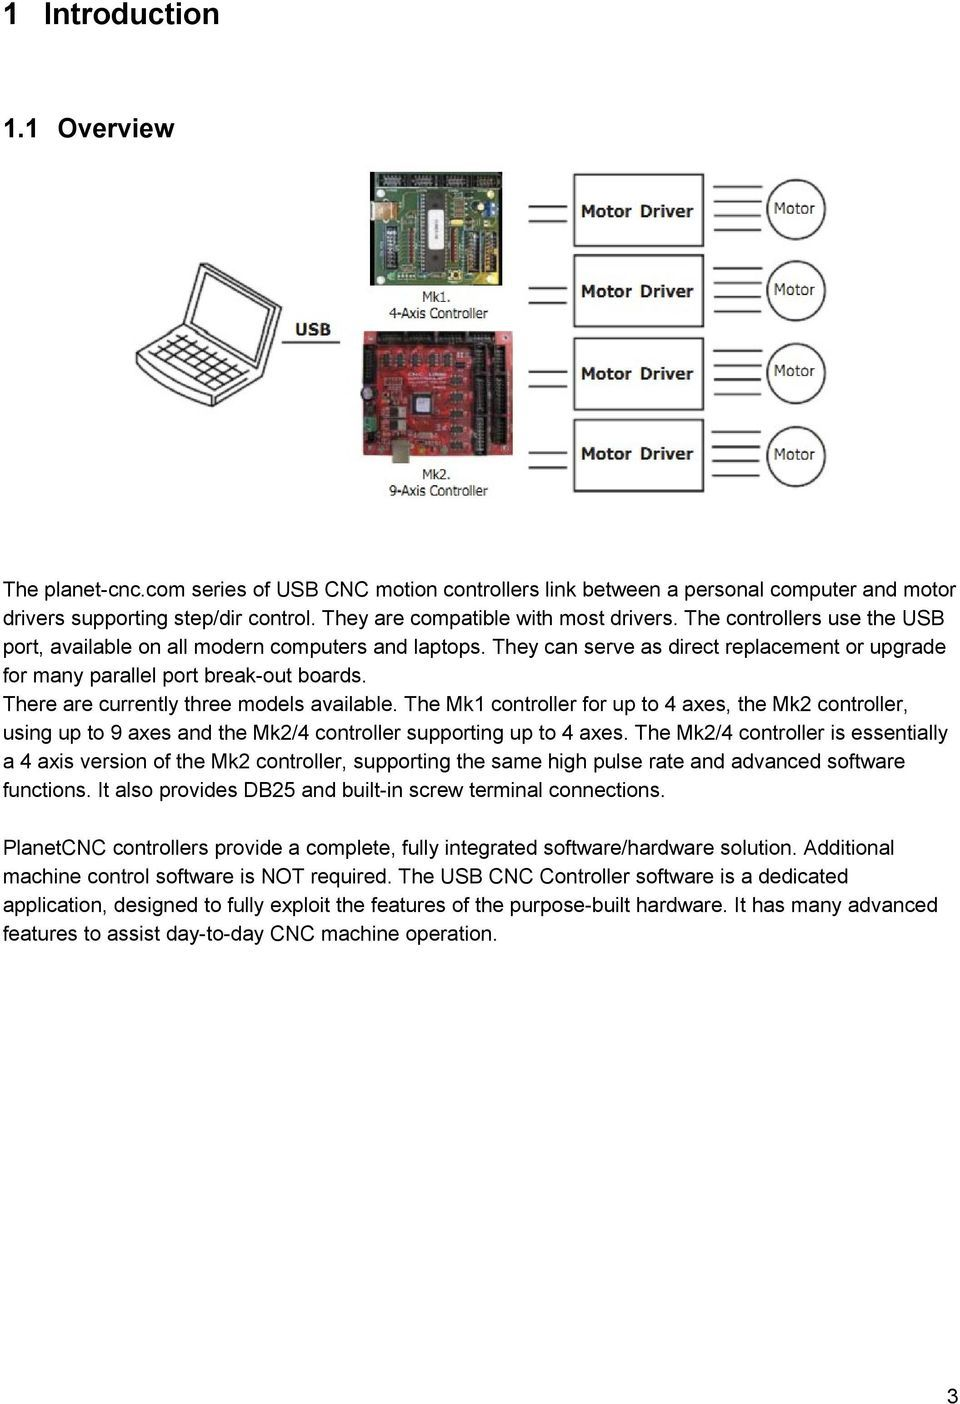 CNC USB Controller  User manual - PDF | Cnc software | Cnc